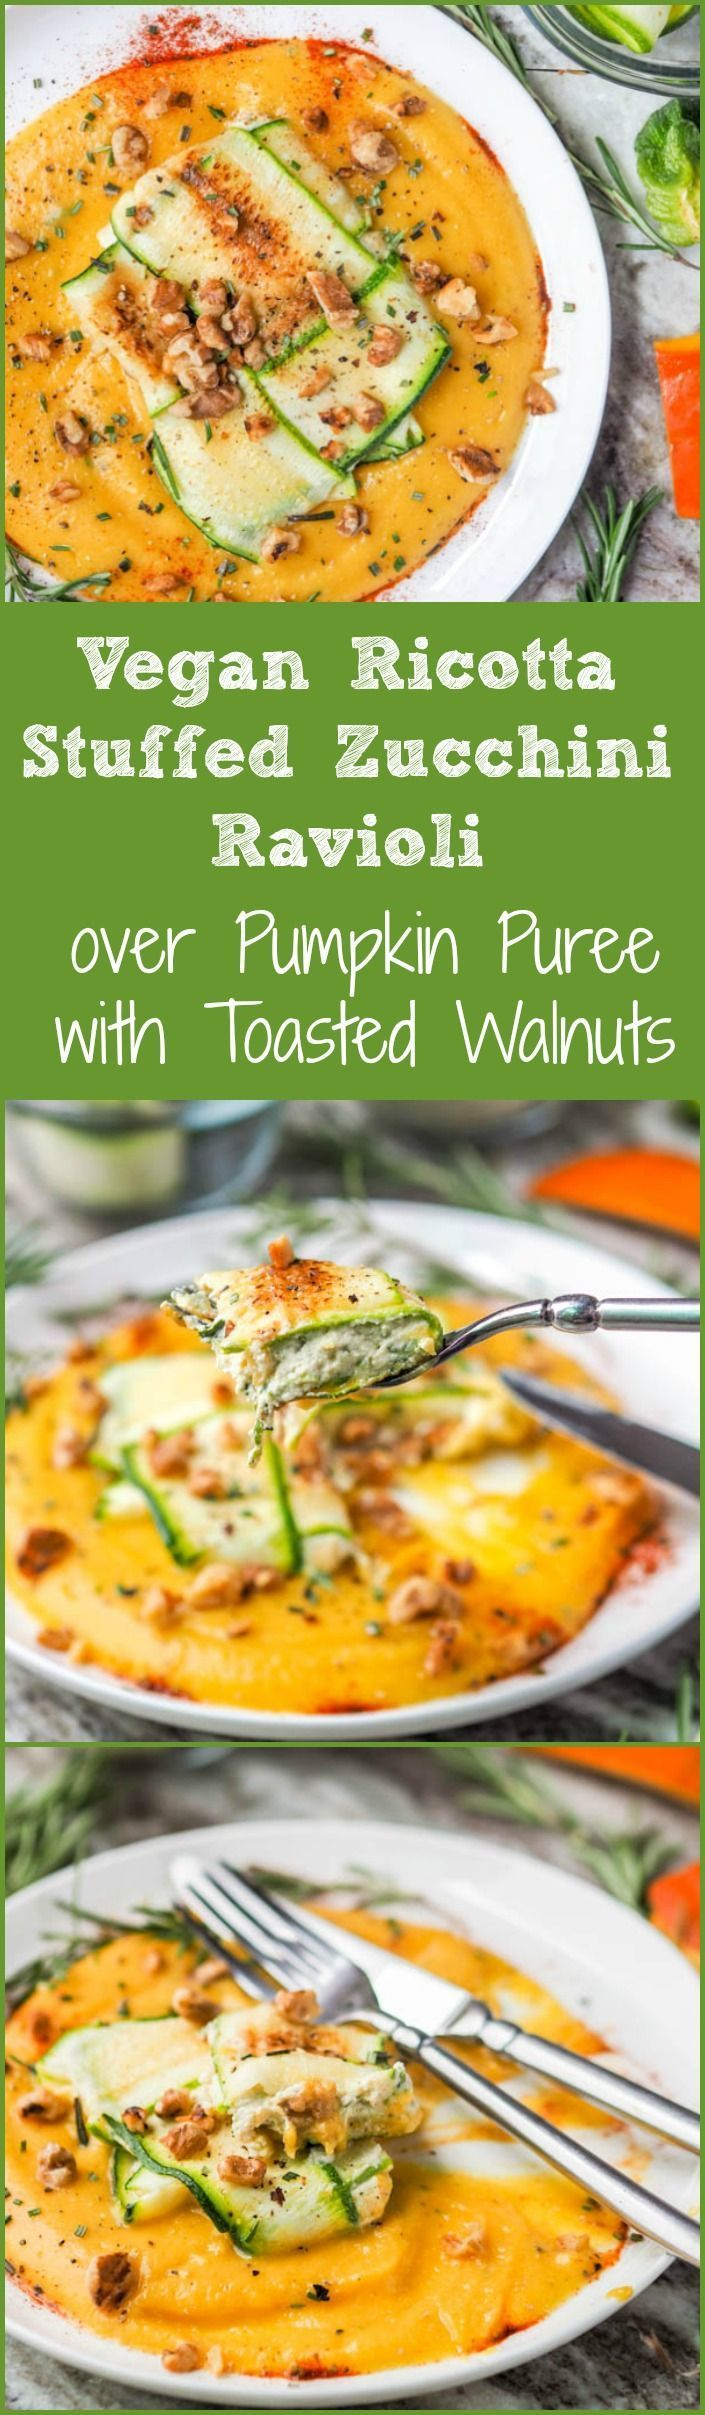 Your favorite fall pumpkin rosemary flavors topped with a vegan ricotta stuffed zucchini ravioli and sprinkled with toasted walnuts. Dinner doesn't get better than this. Low Carb, Paleo + Gluten Free too. | avocadopesto.com